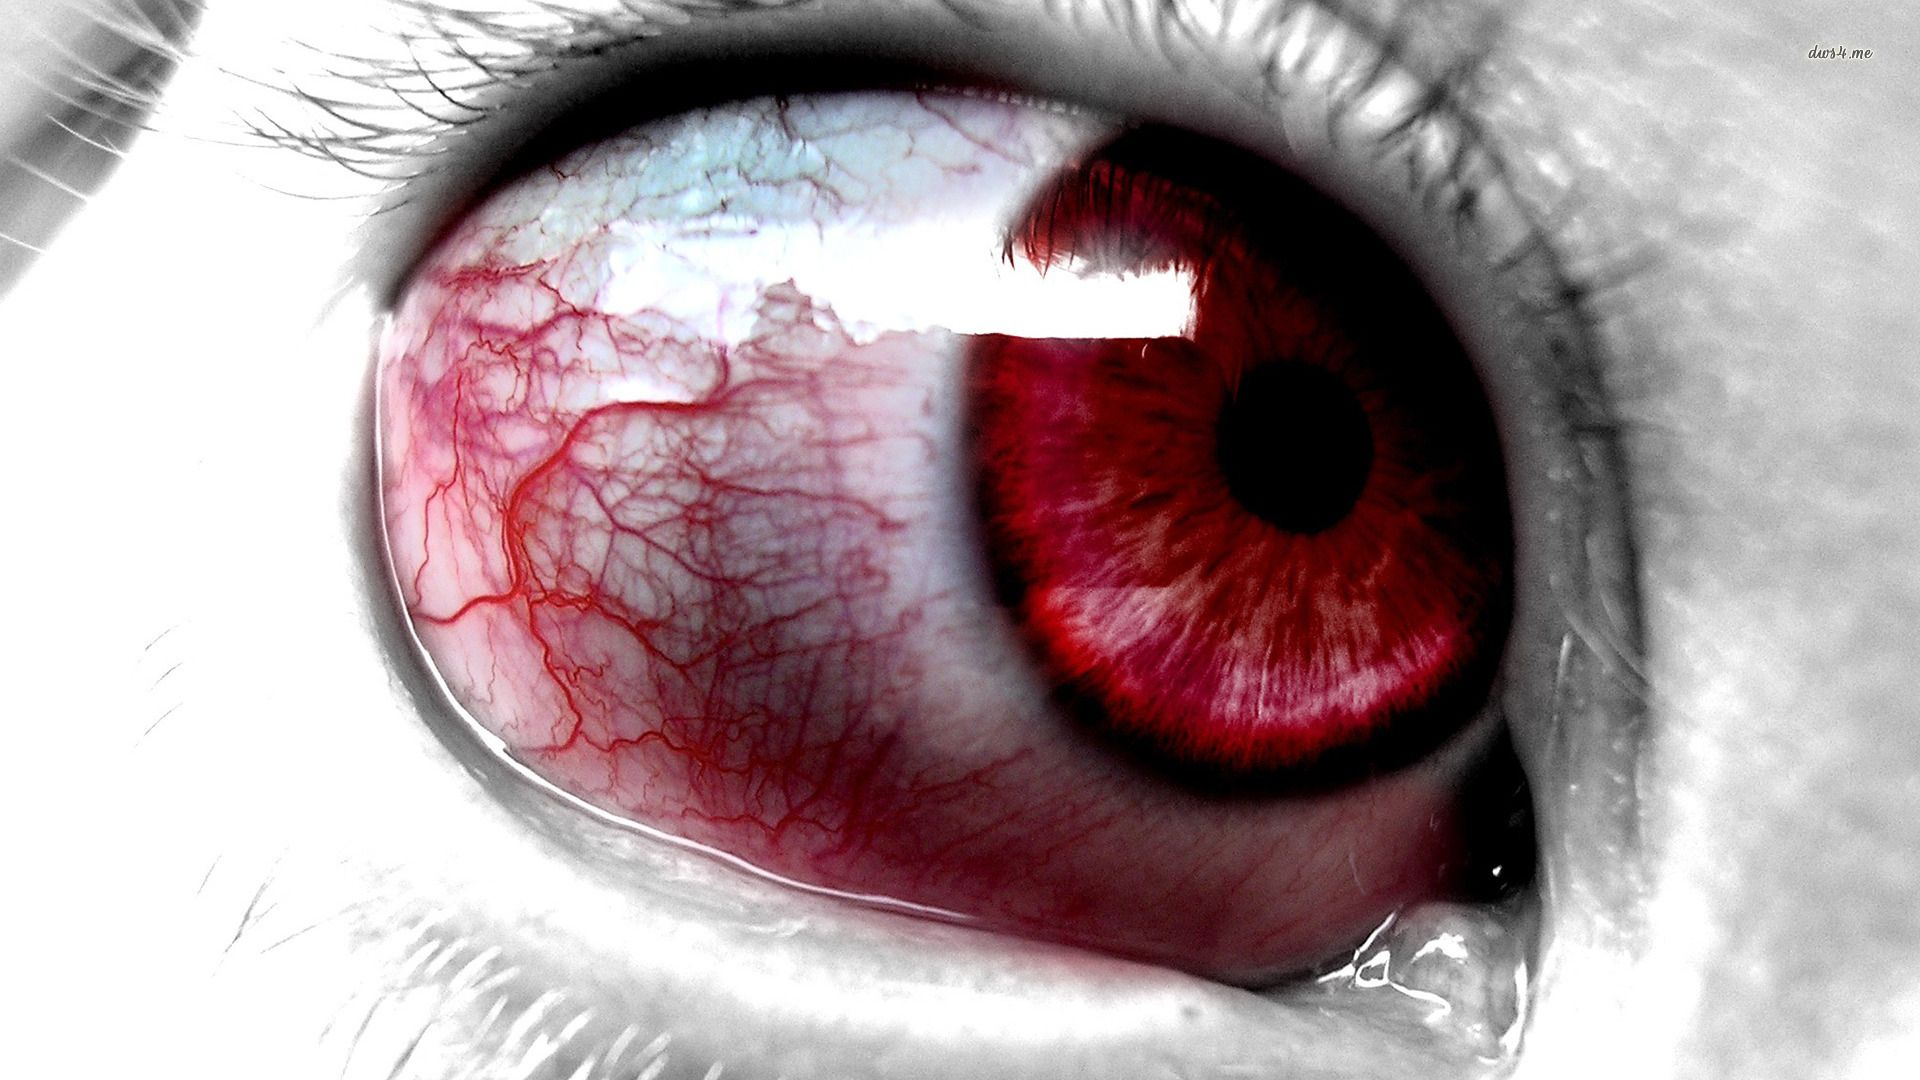 Bloody Love Wallpaper : bloody eyes HD Wallpaper - Blood Wallpaper Eye Wallpaper Wallpaper Pinterest Hd wallpaper ...